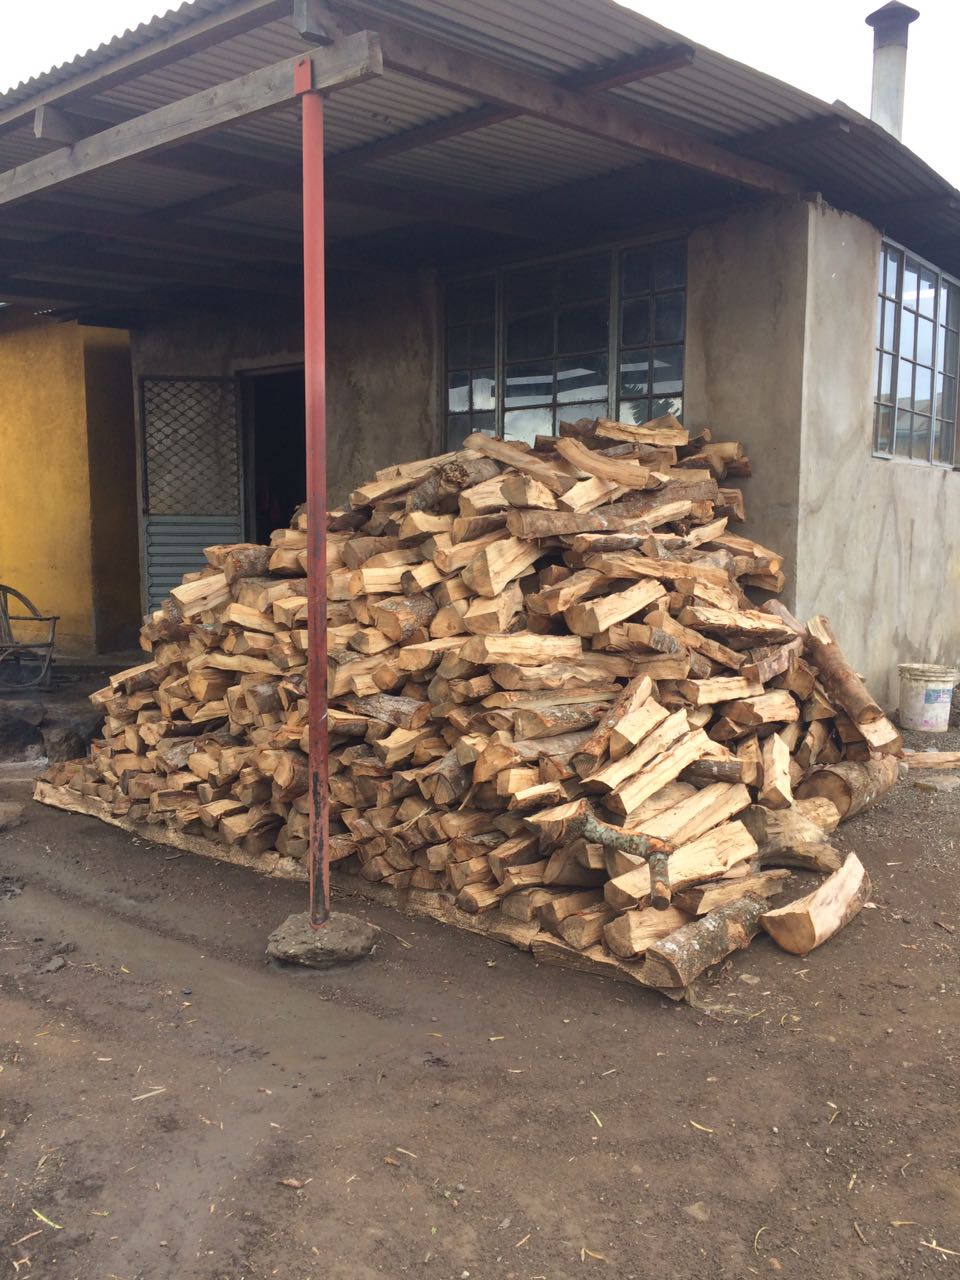 Firewood has been purchased and all of the water tanks have been filled, which will get us through the next few months.